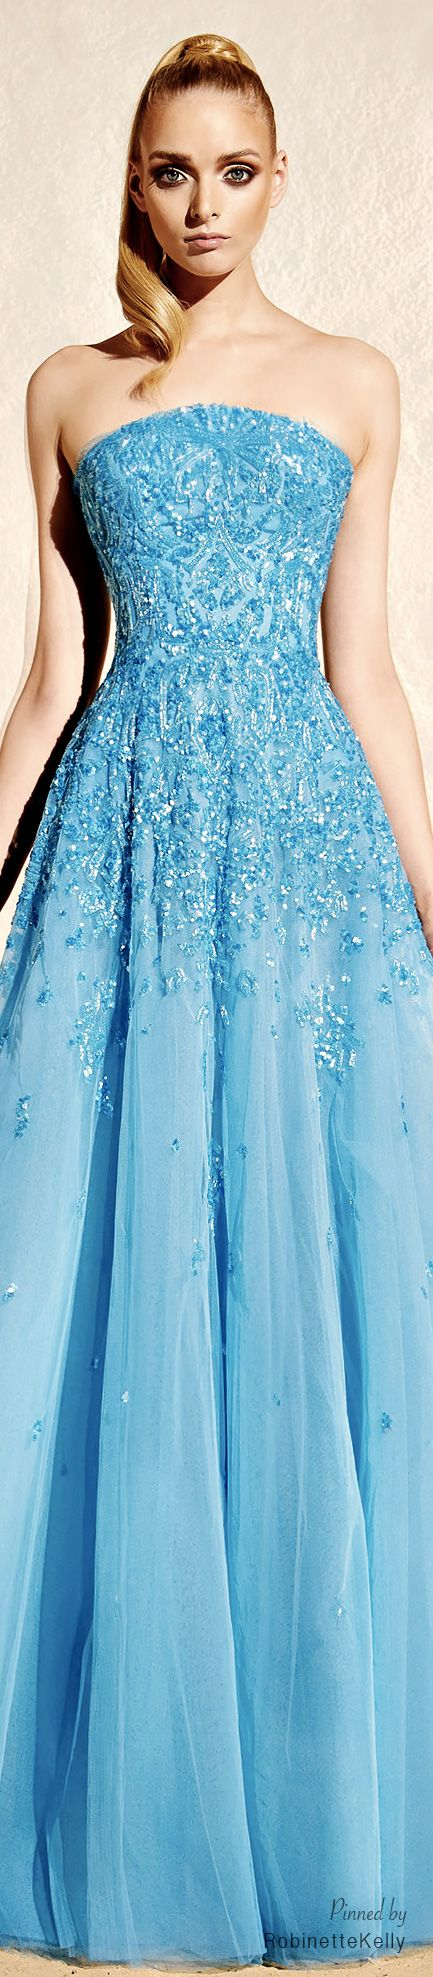 375 best clothes and crap to wear images on Pinterest | High fashion ...